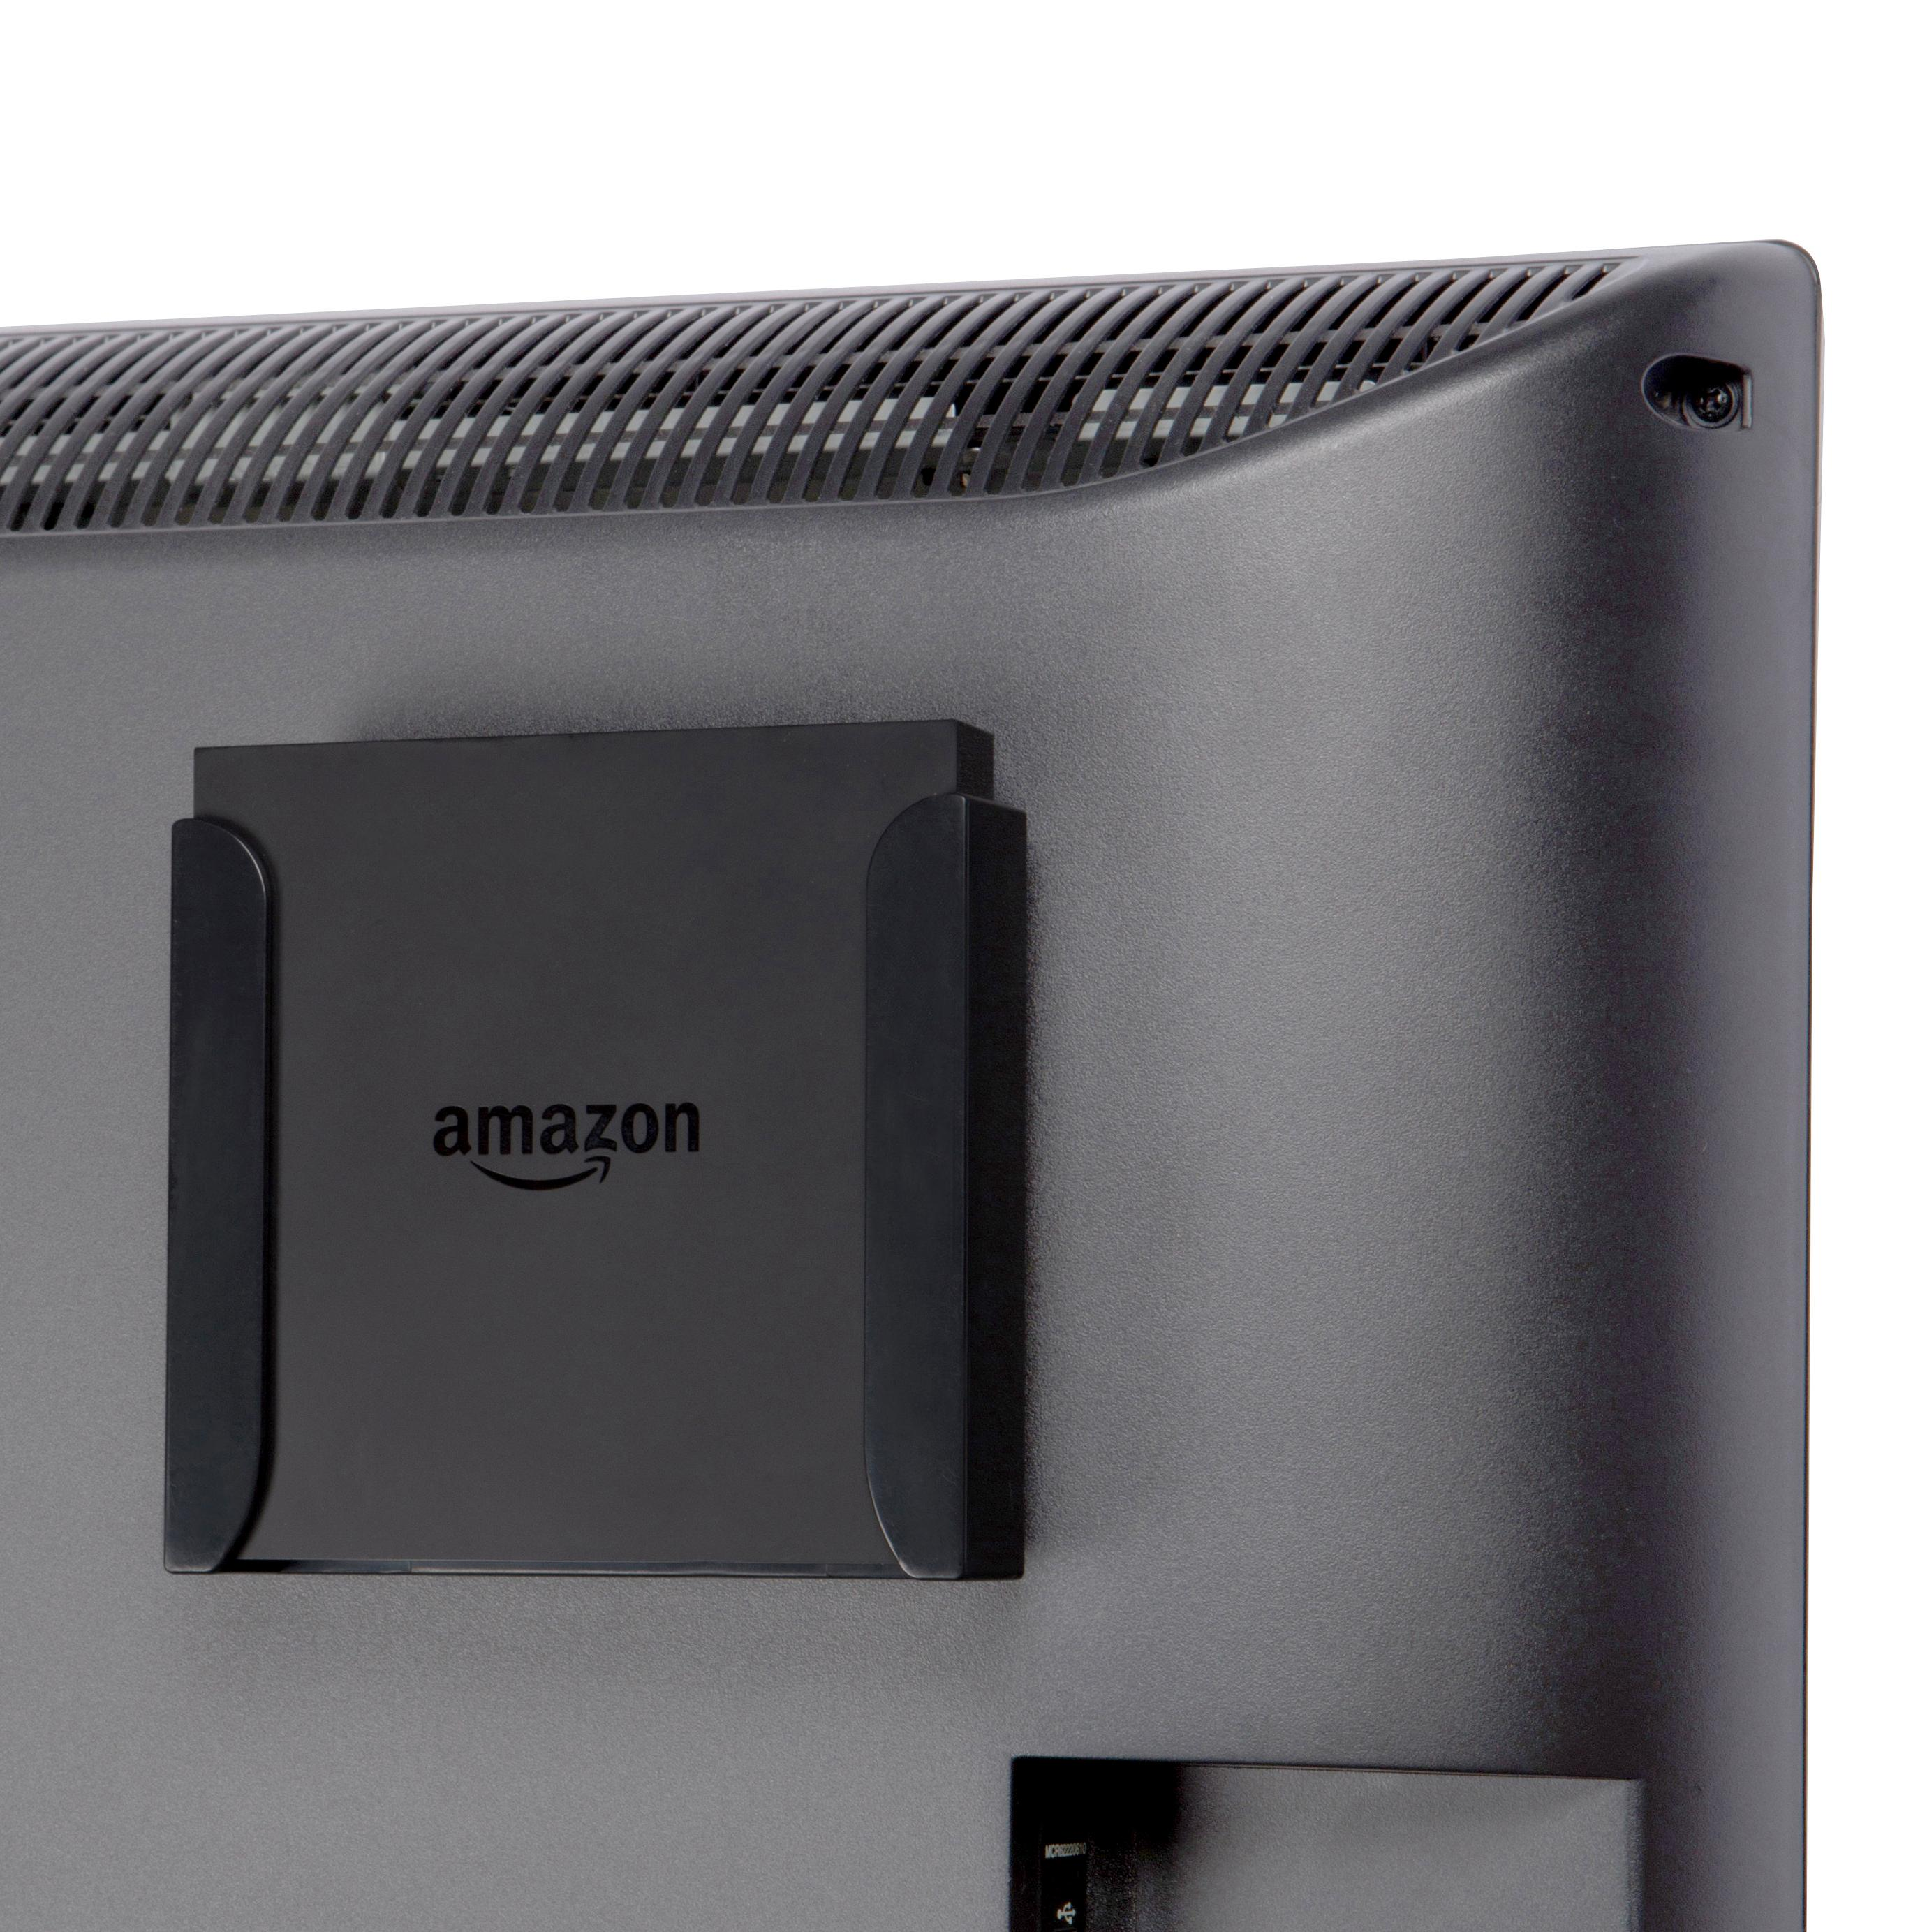 Amazon.com: TotalMount Fire TV Mounting System - Not